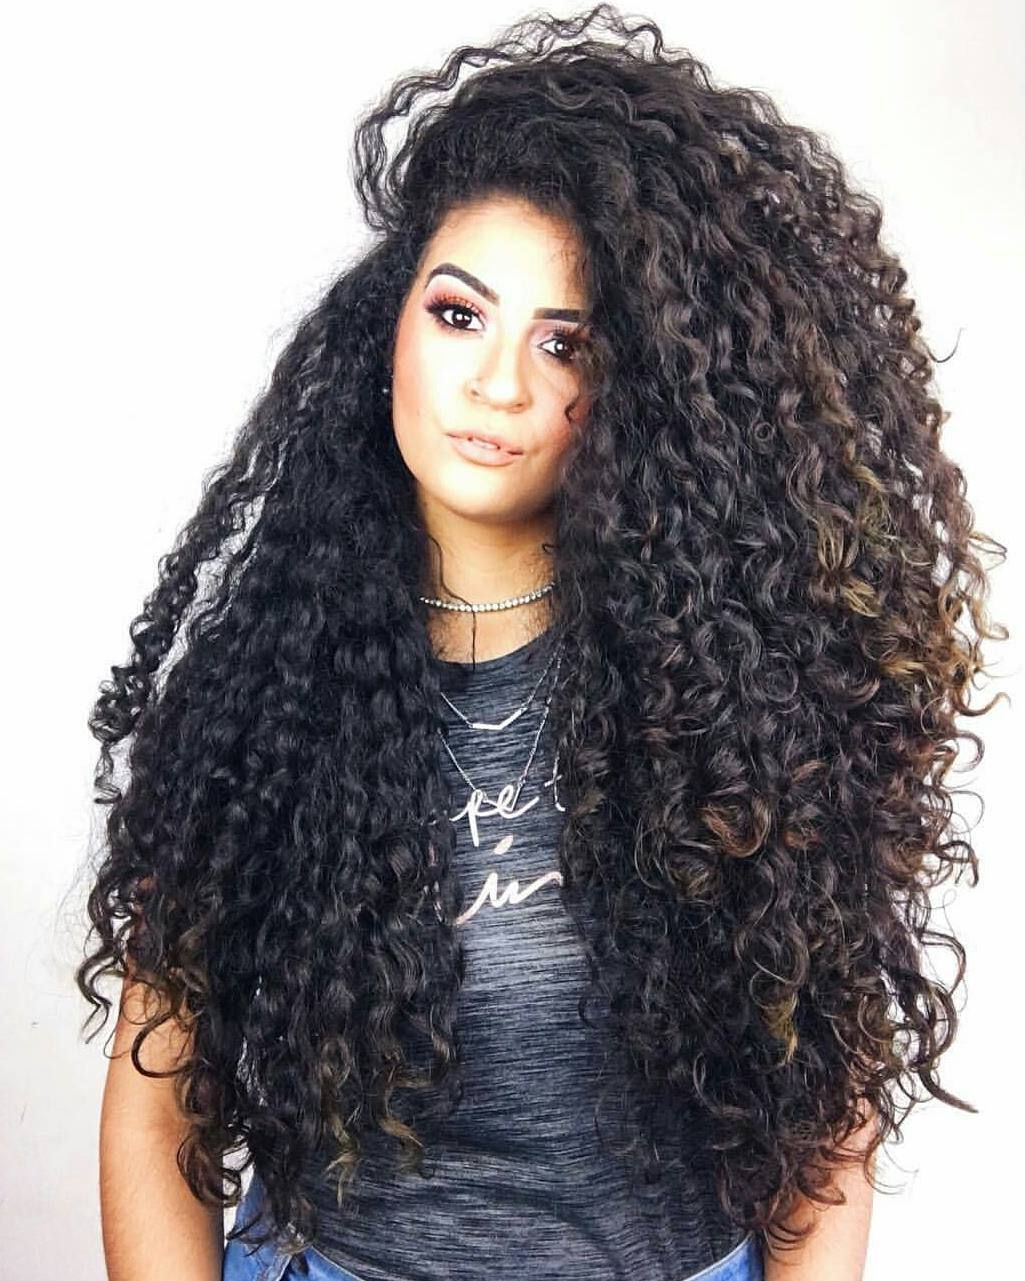 Weavehairstylescurly Long Hair Styles Curly Hair Styles Hair Styles